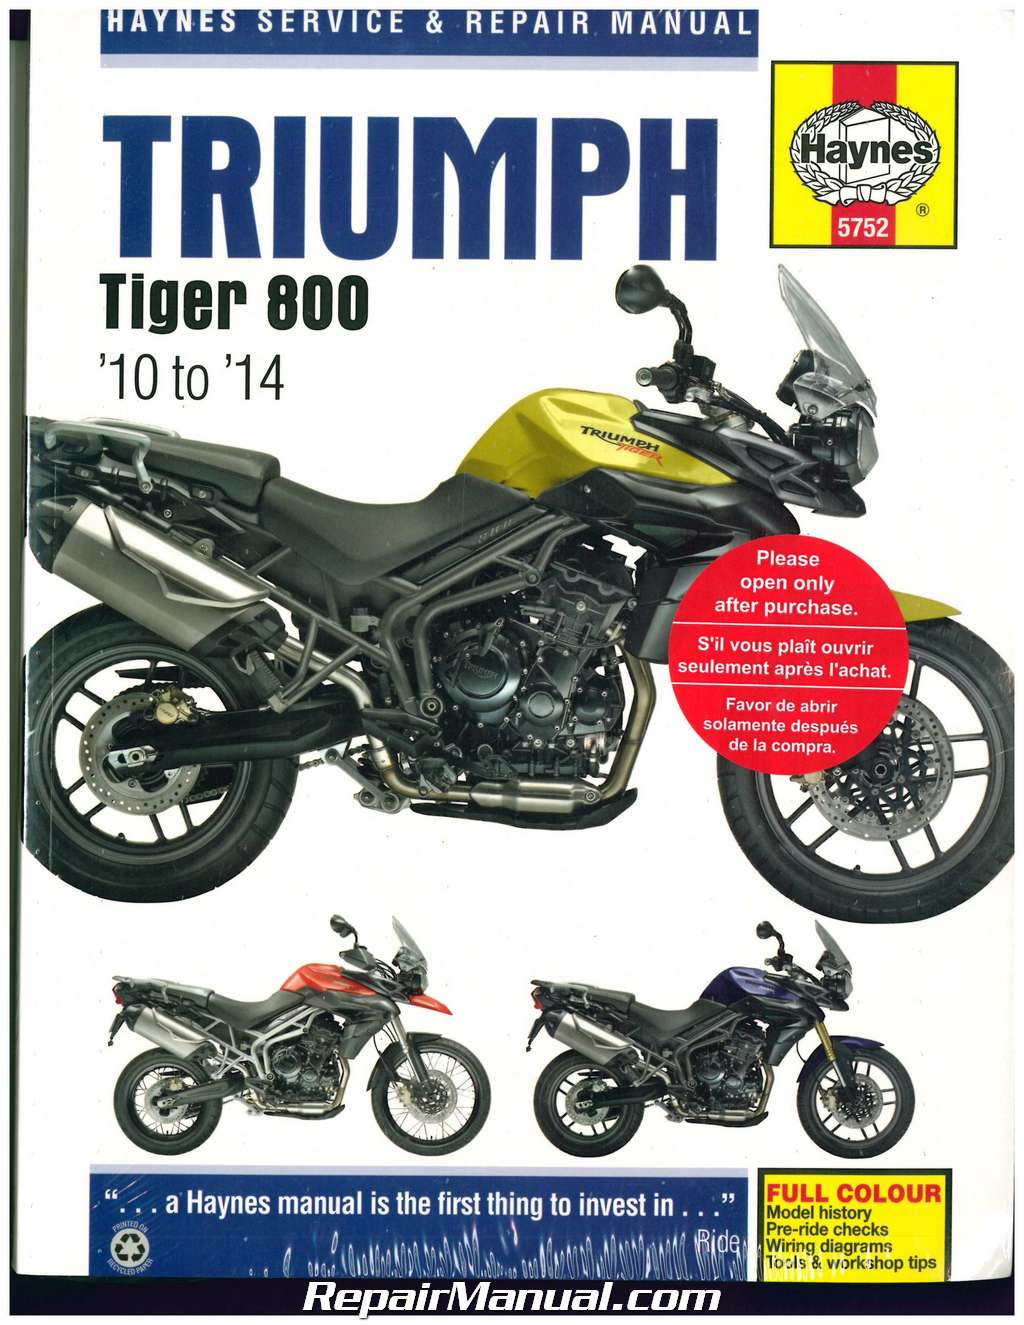 triumph tiger 800 800 xc 2010 2014 haynes motorcycle repair manual rh repairmanual com triumph tiger 800 xcx service manual triumph tiger 800 xcx service manual